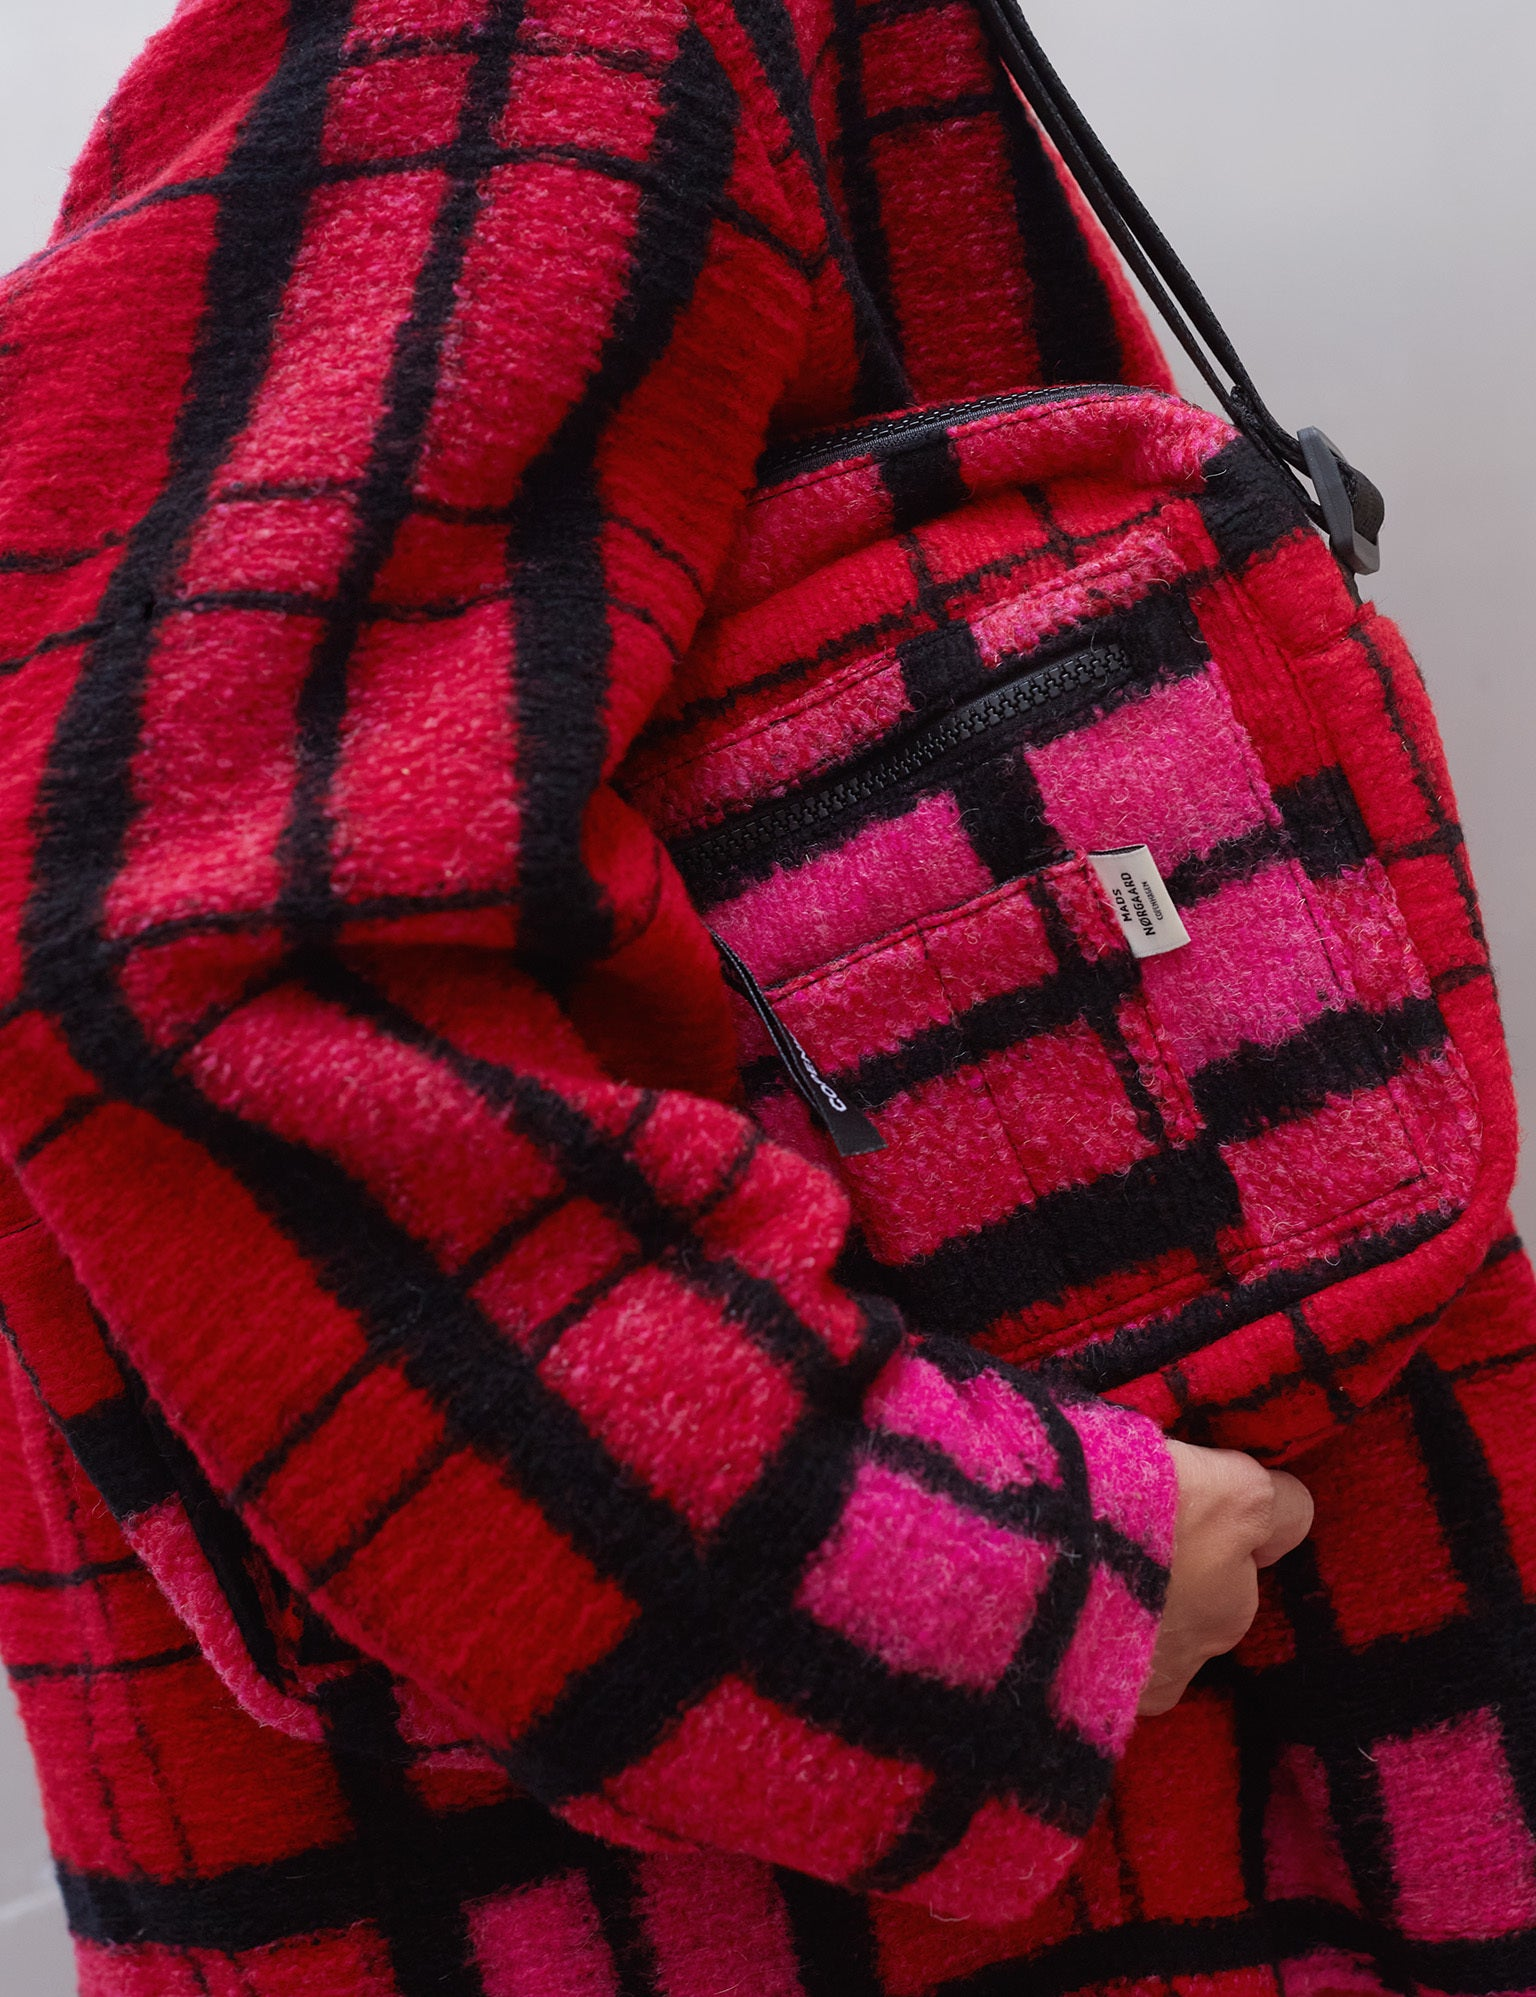 Bel Couture Cappa Wool, Pink check